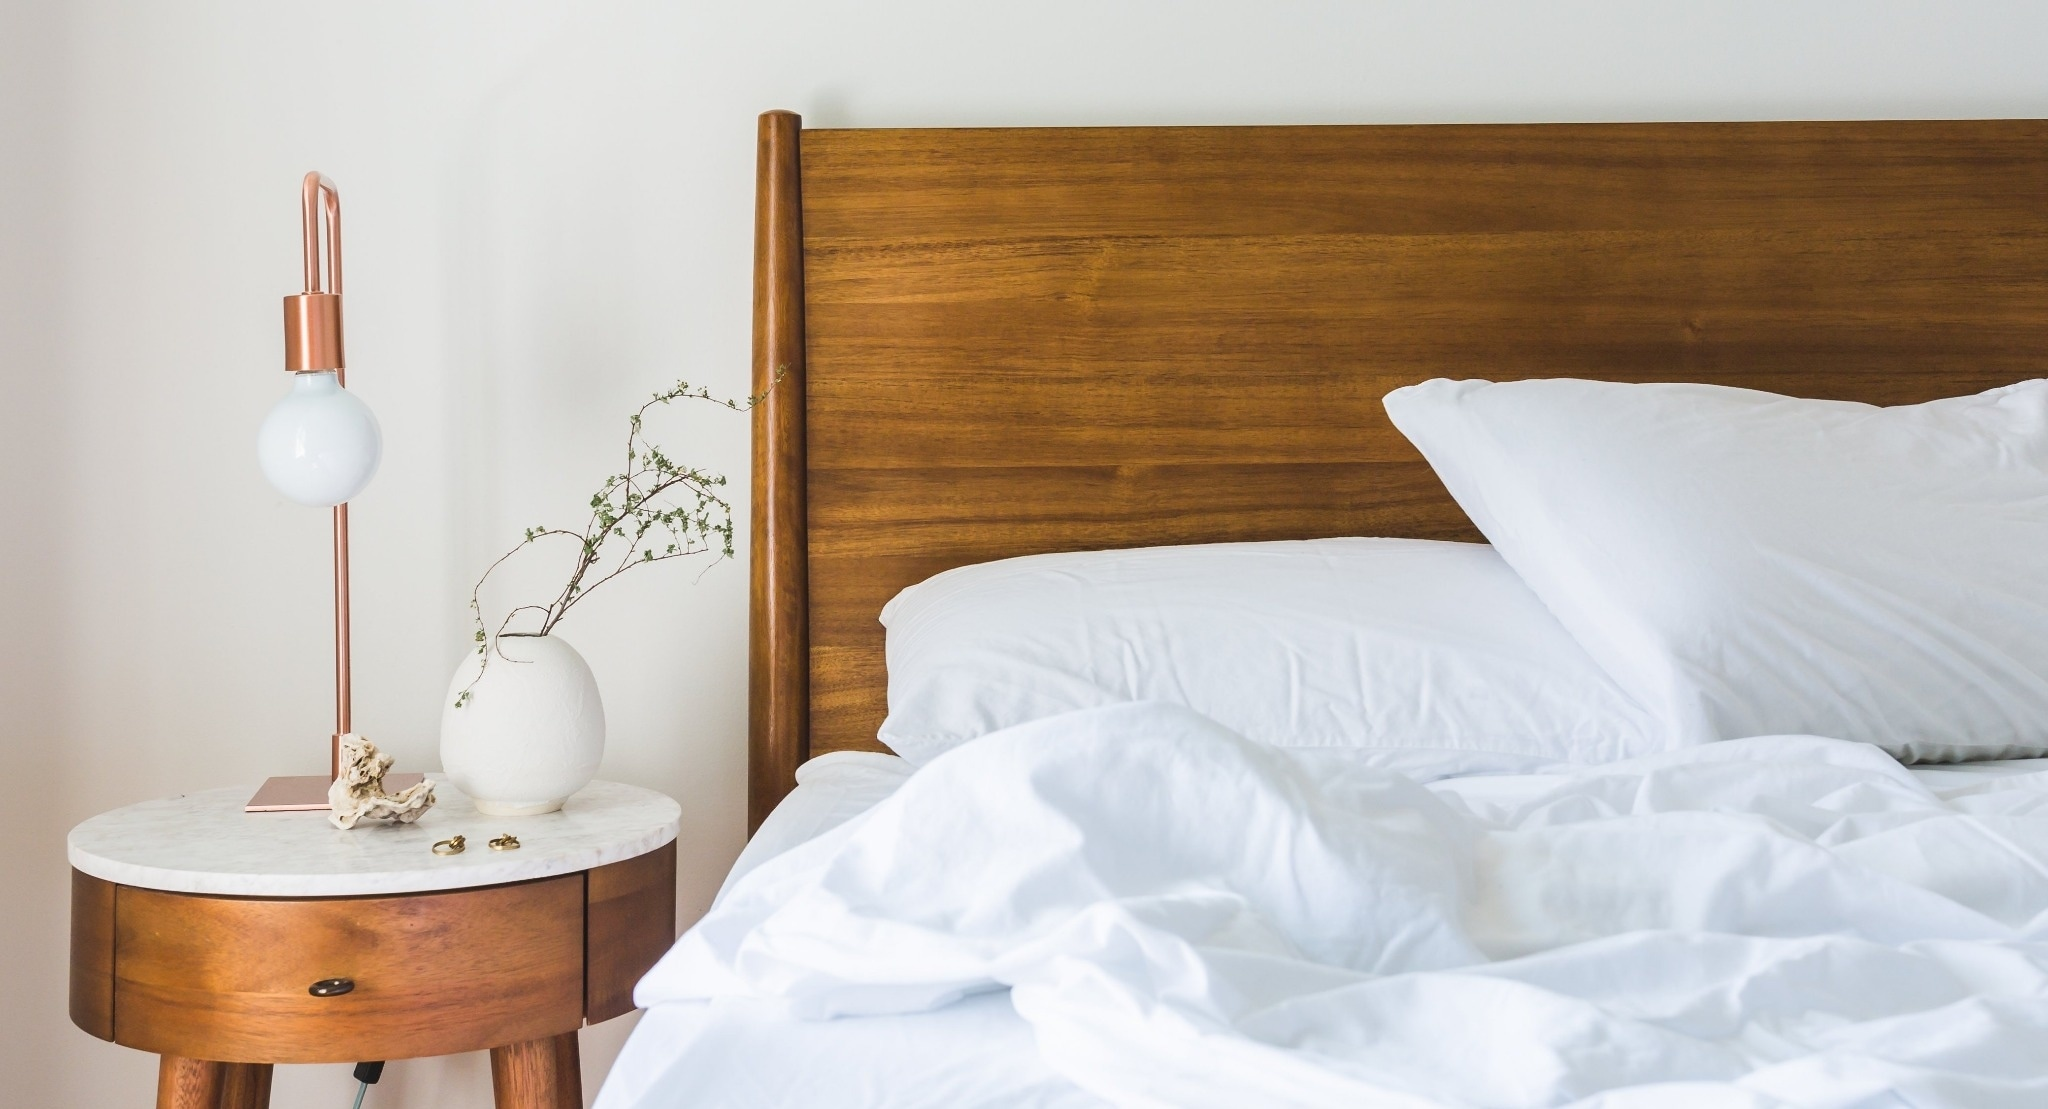 The 7 Best Luxury Bedding Startups Compared: Brooklinen vs. Parachute and Others